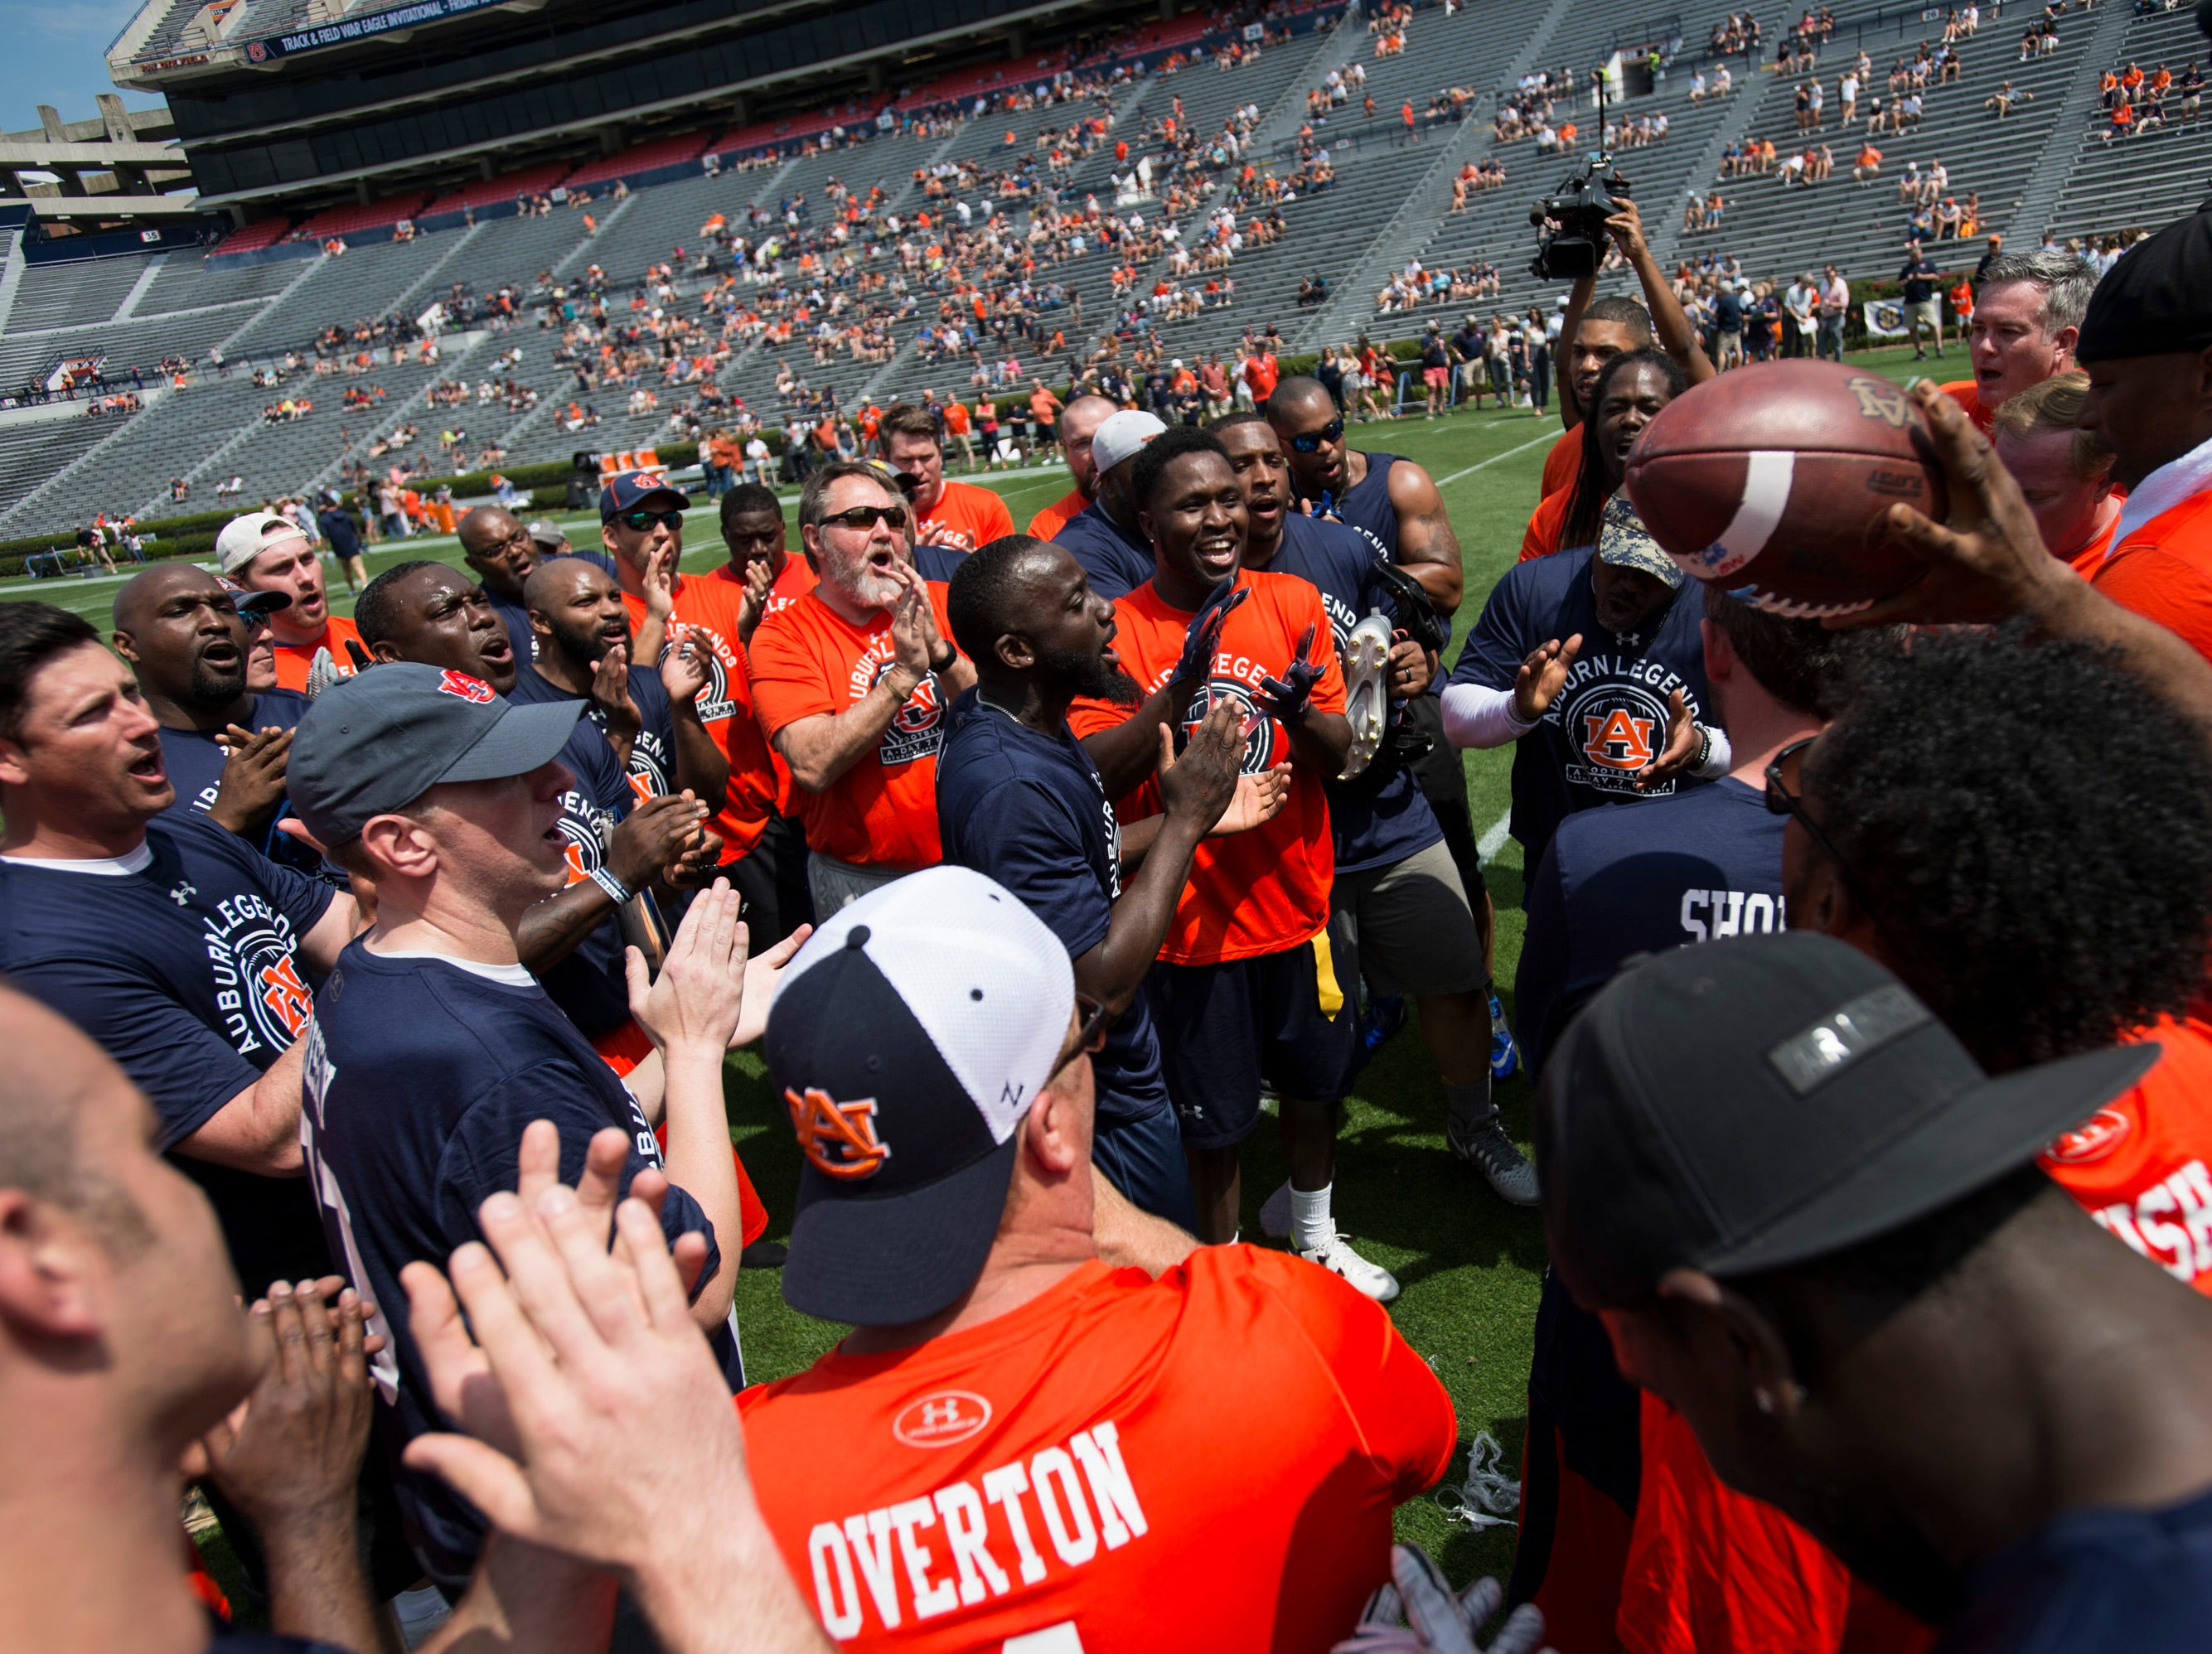 The Auburn Legends teams huddle up after their flag football game during the A-Day spring practice gameat Jordan-Hare Stadium in Auburn, Ala., on Saturday, April 13, 2019.